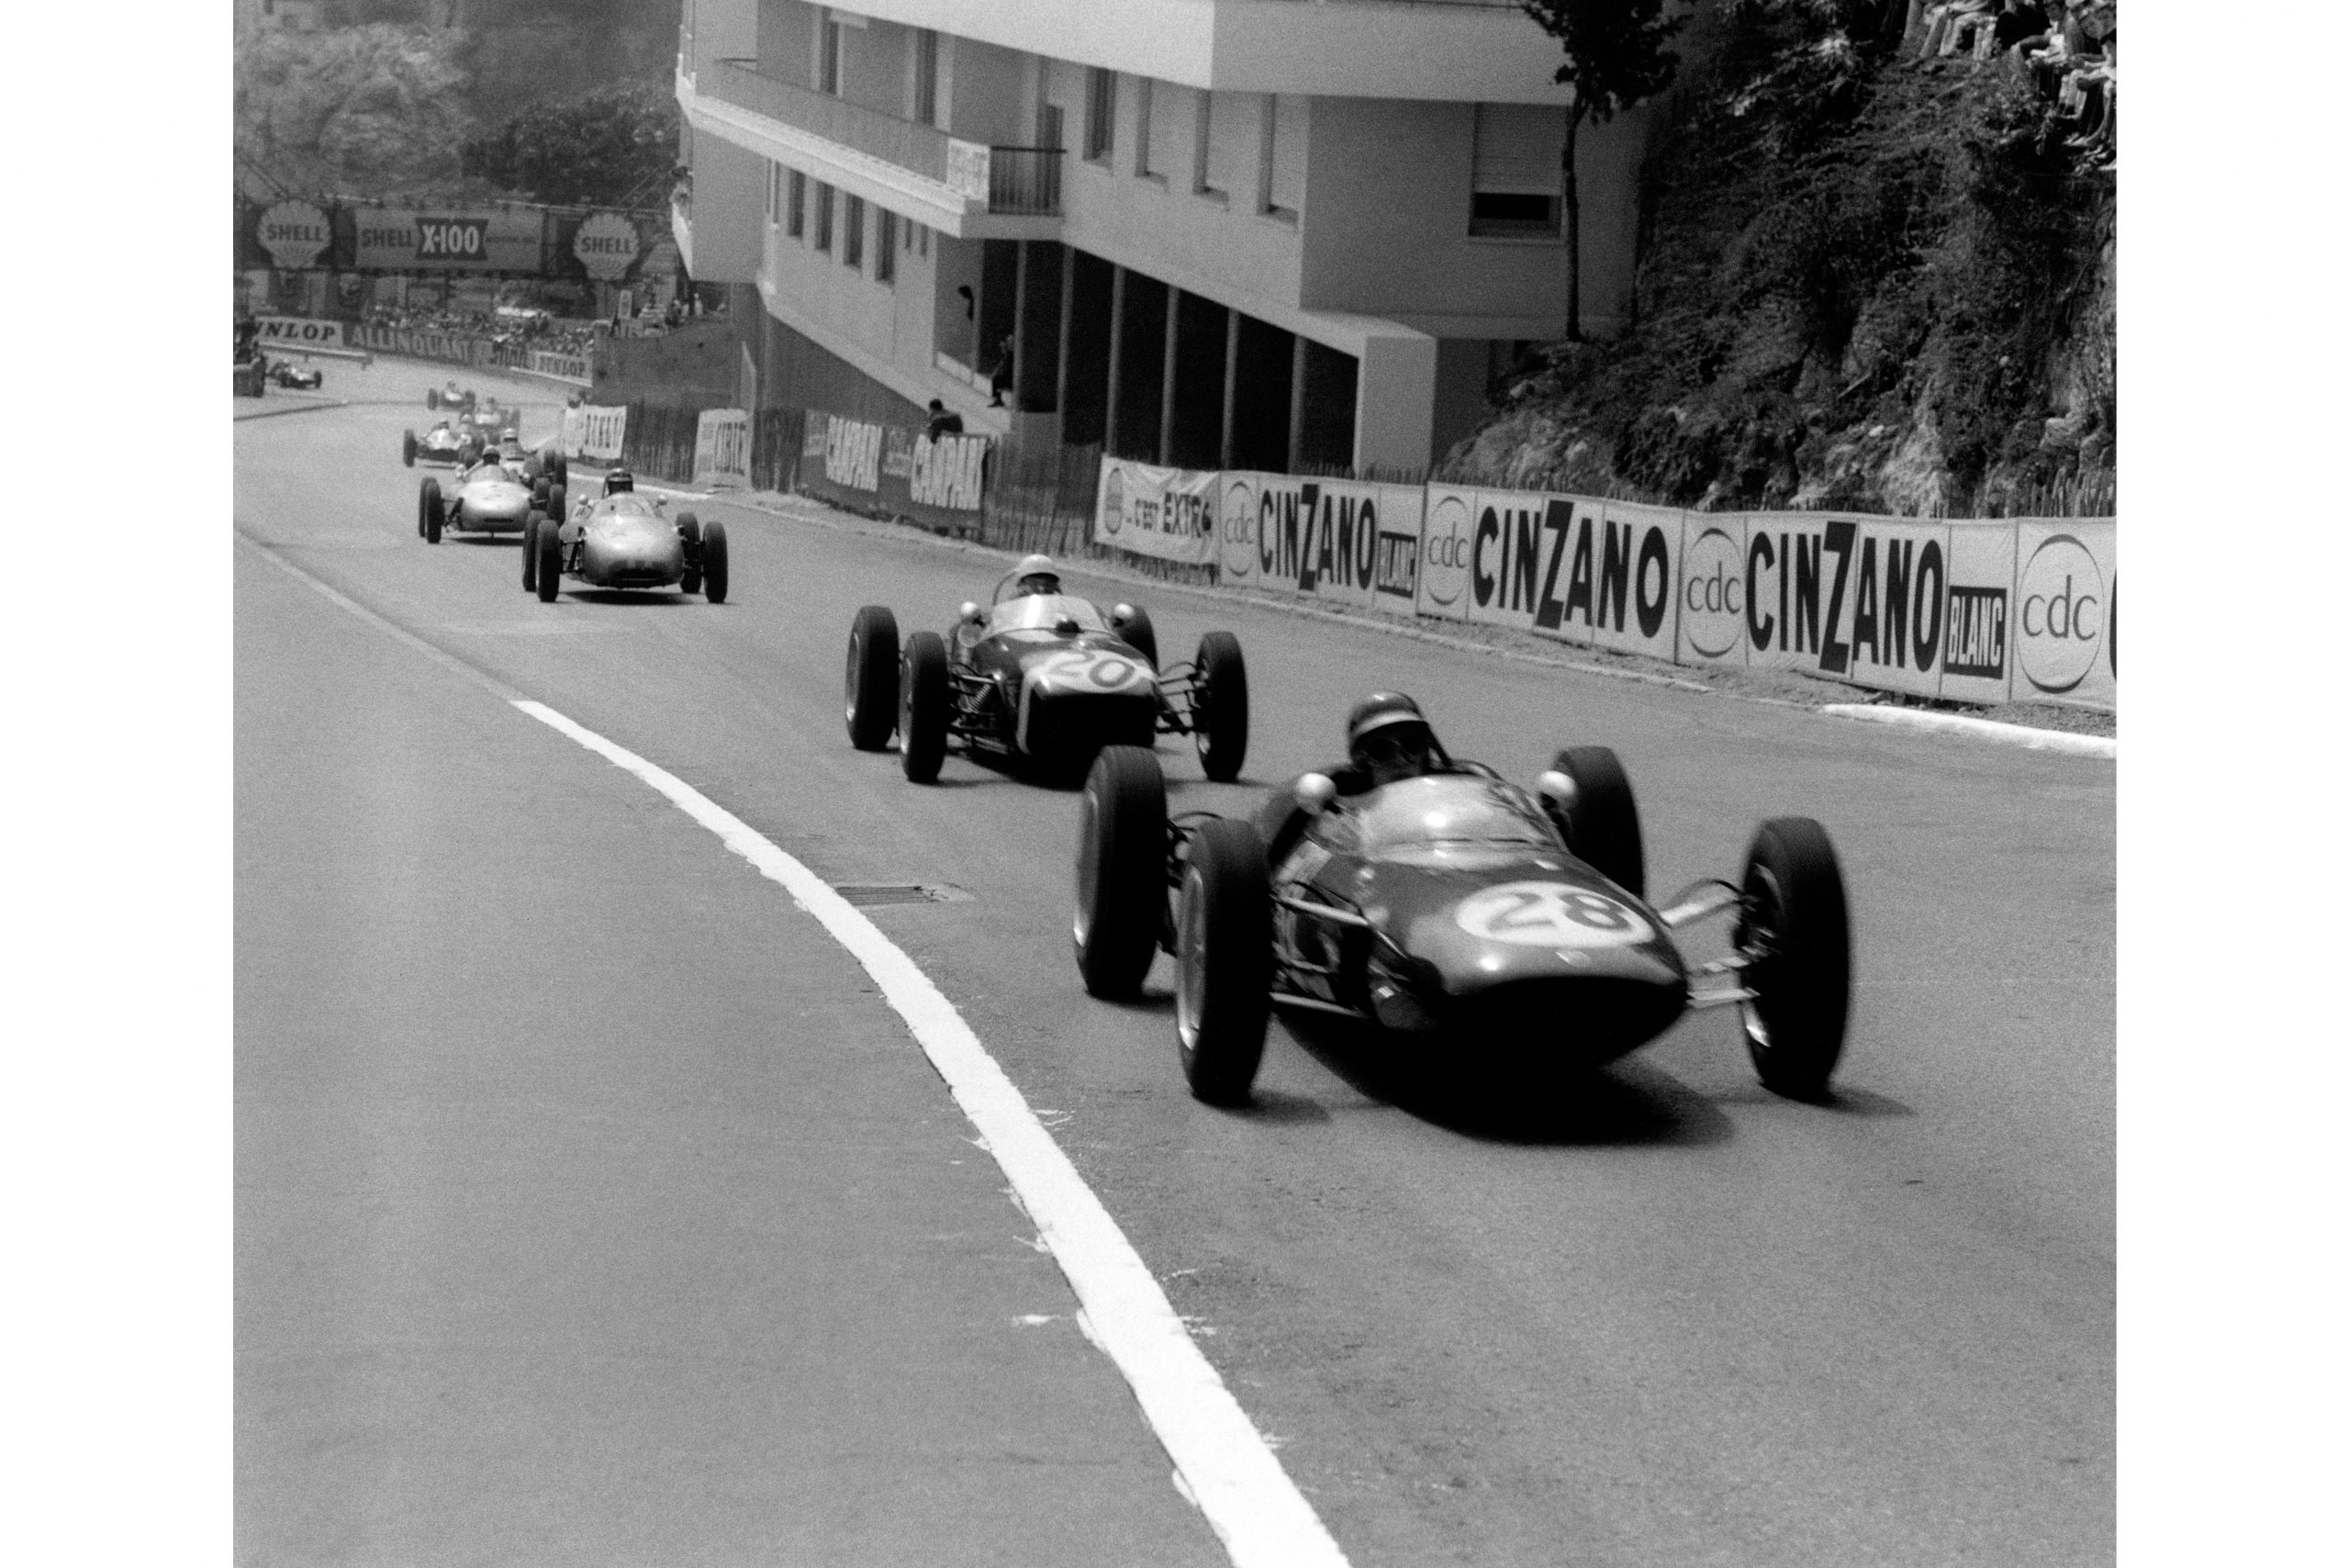 Jim Clark in a Lotus 21-Climax leads Stirling Moss driving a Lotus 18-Climax.